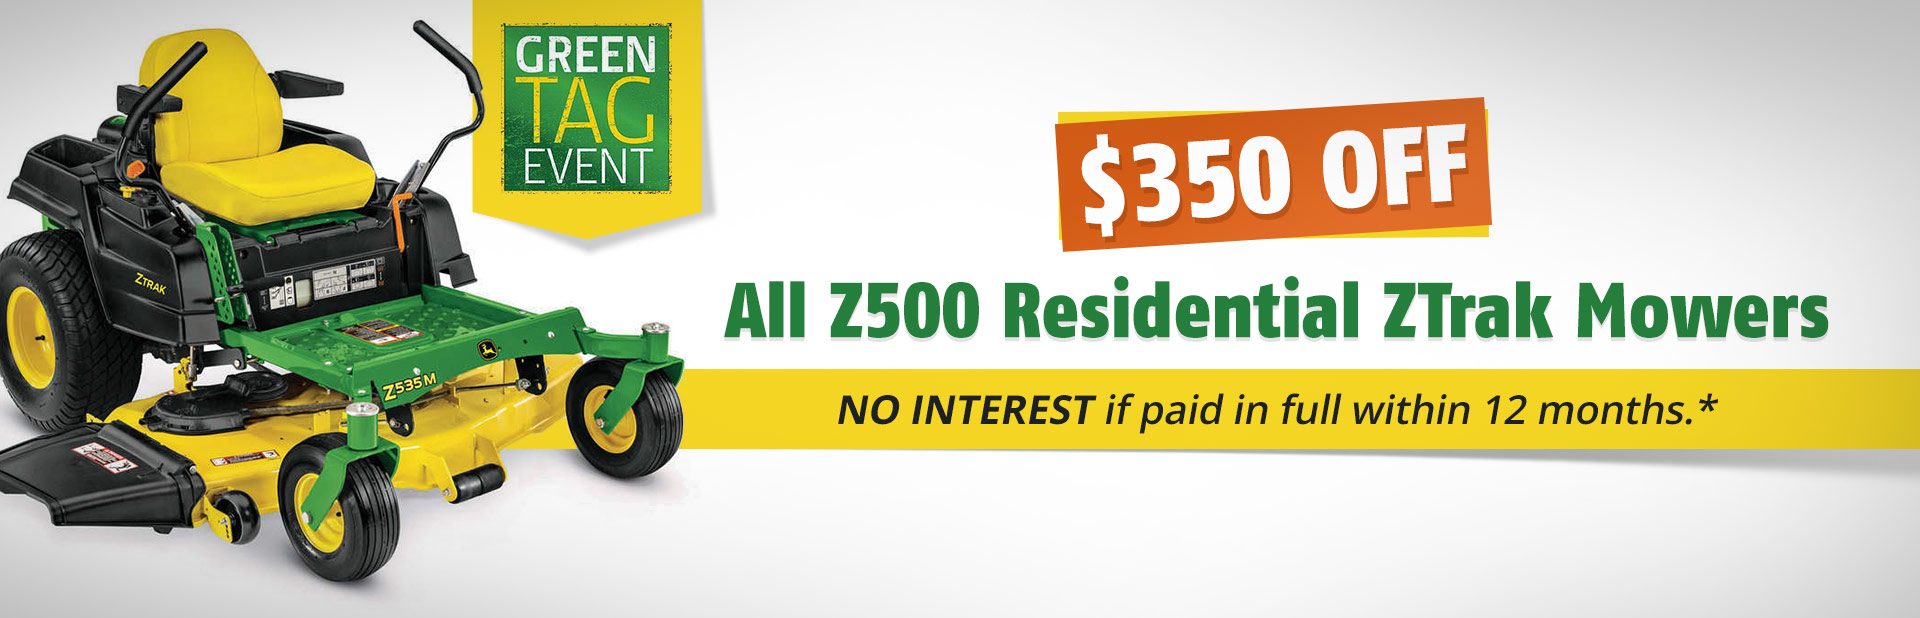 John Deere Green Tag Event: Get $350 off all Z500 residential ZTRAK mowers! No interest if paid in full within 12 months.*